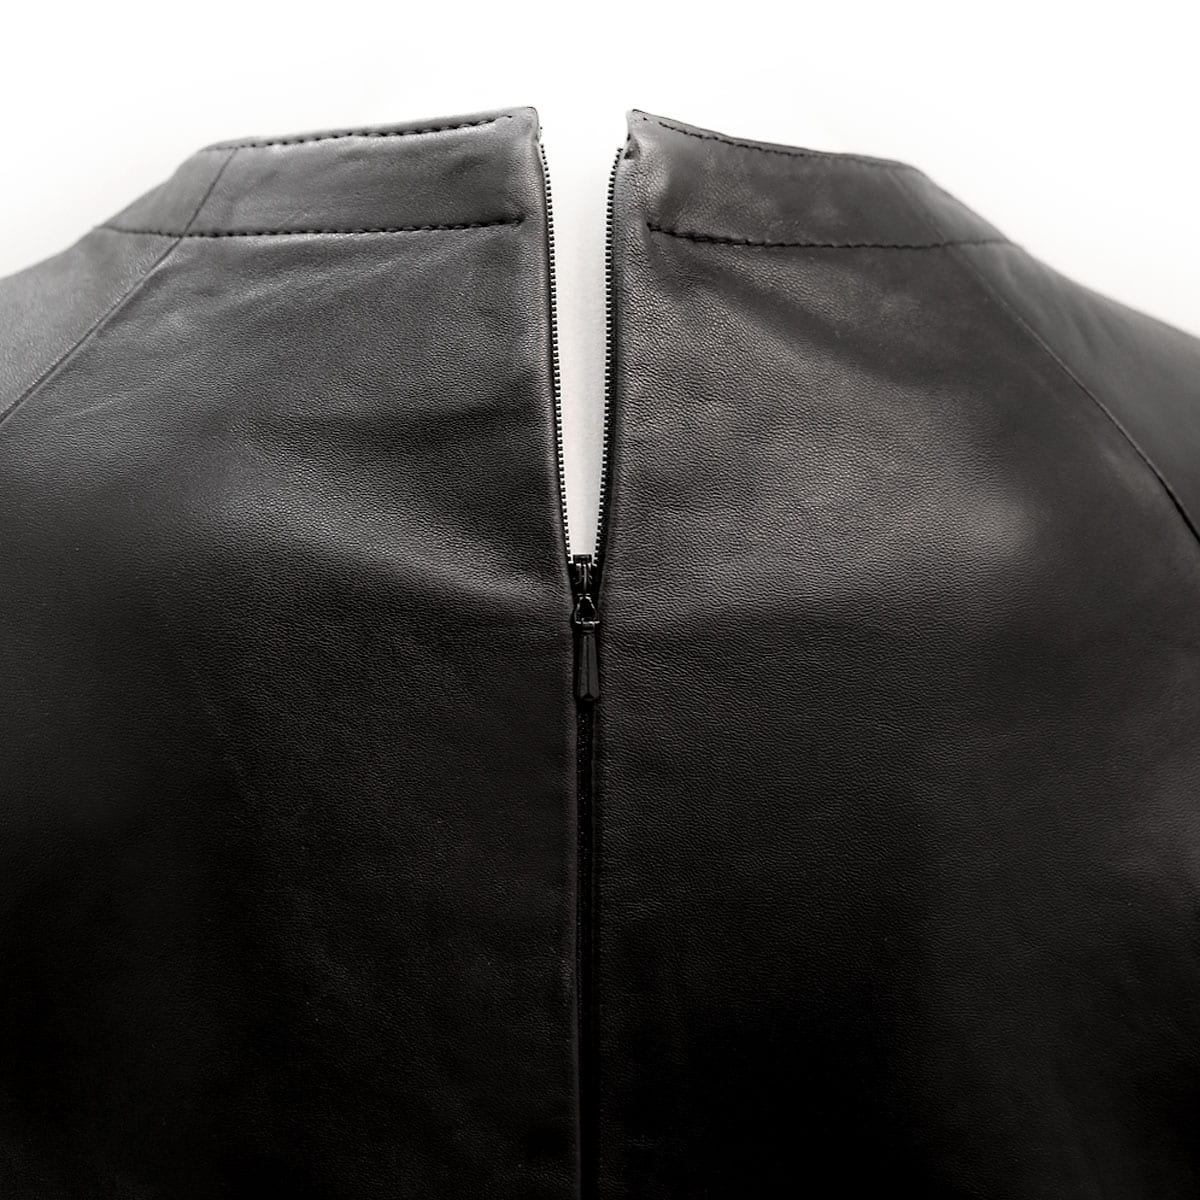 LUMI Leather Garments T-Shirt details, back